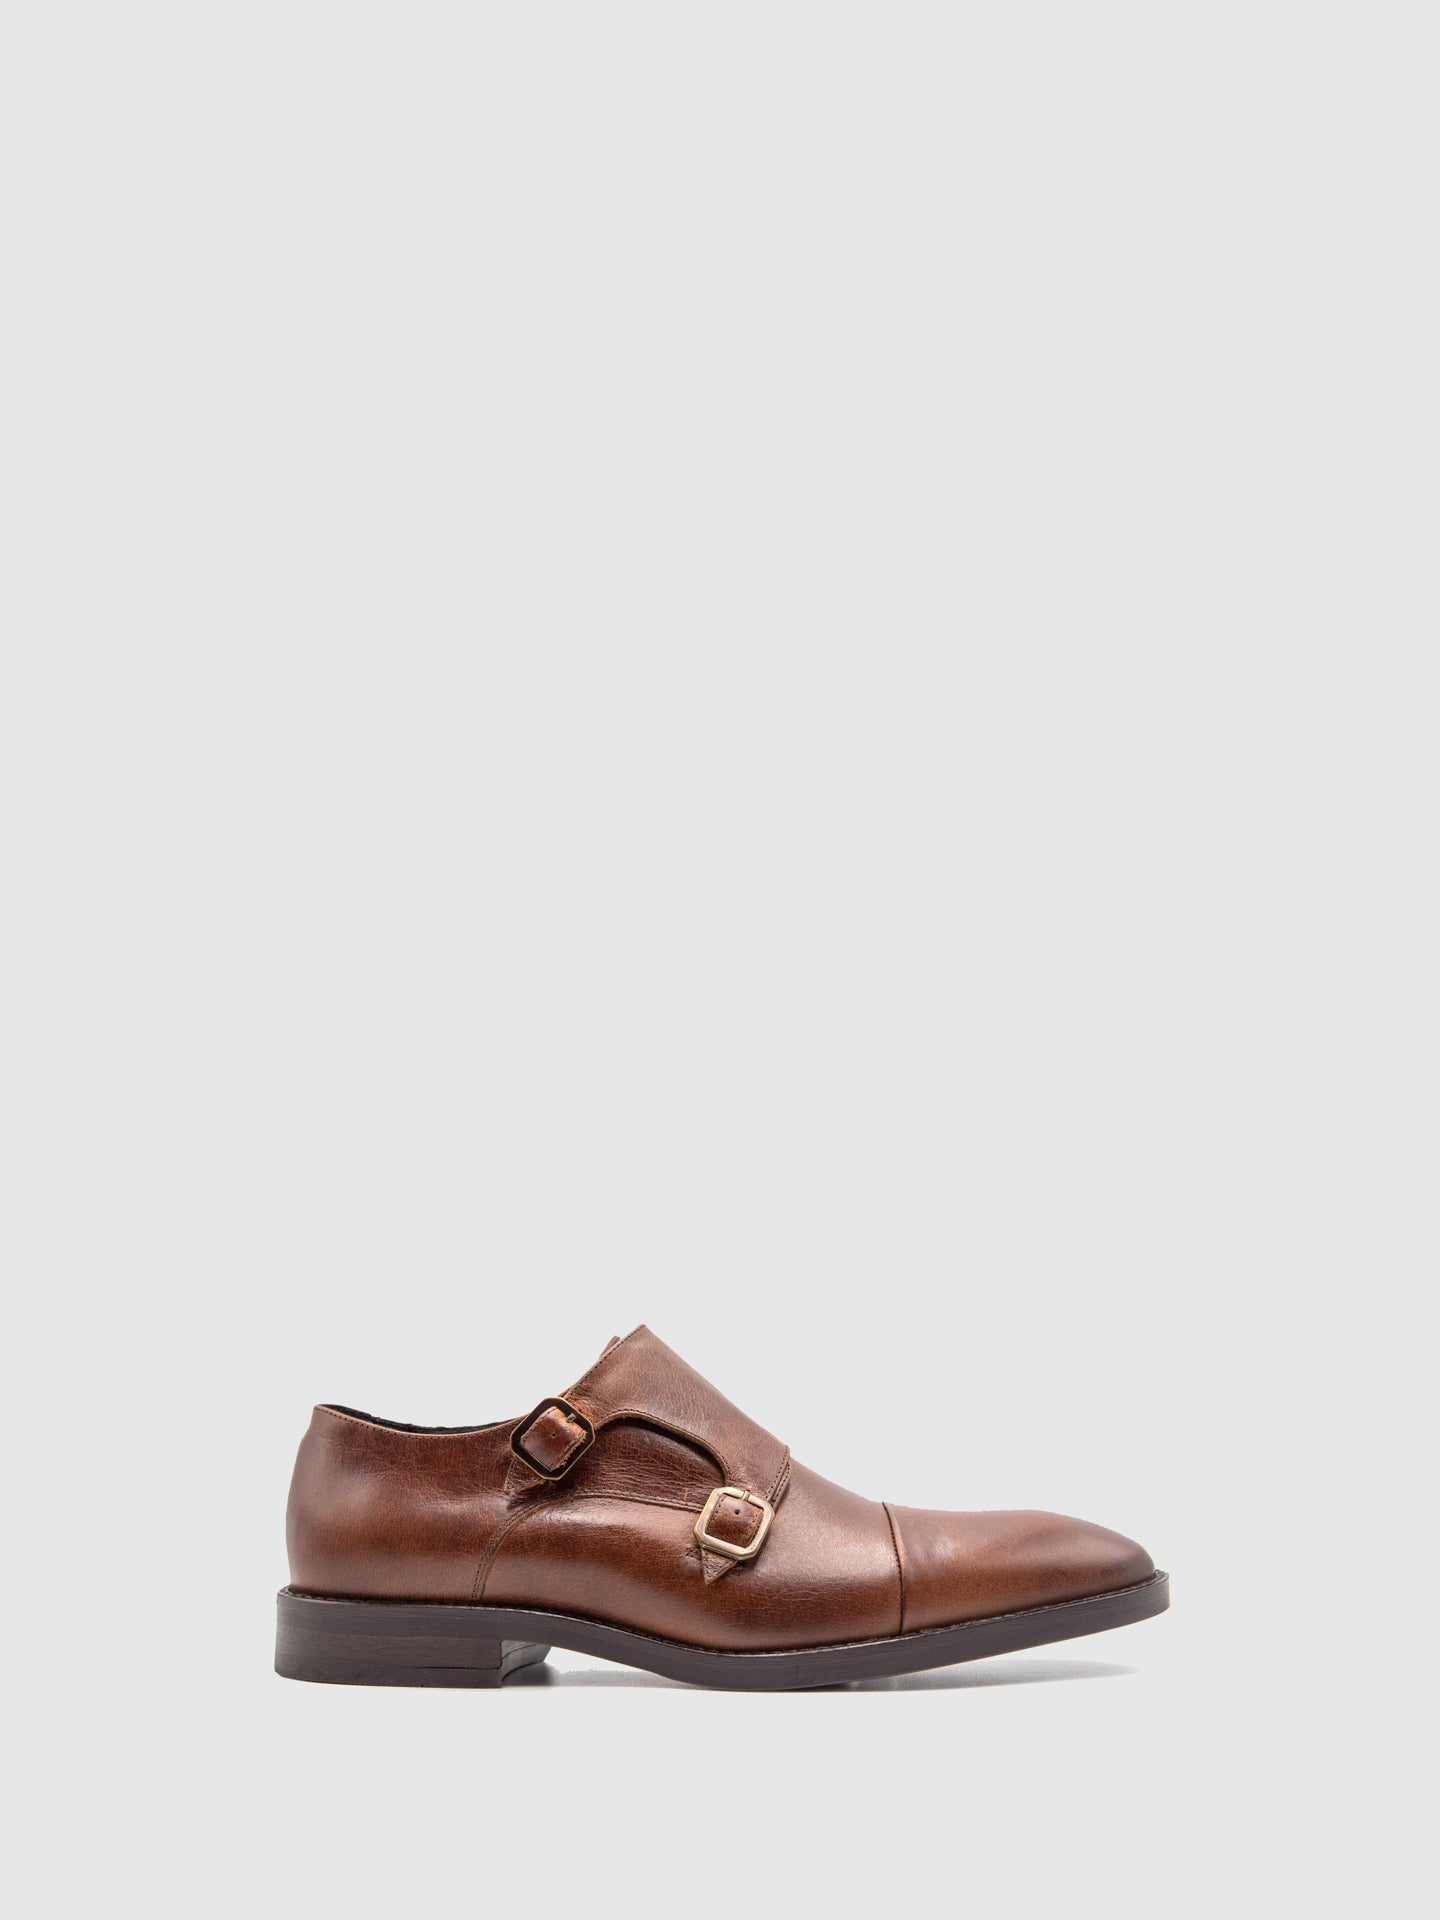 Pulser Shoes Brown Buckle Shoes